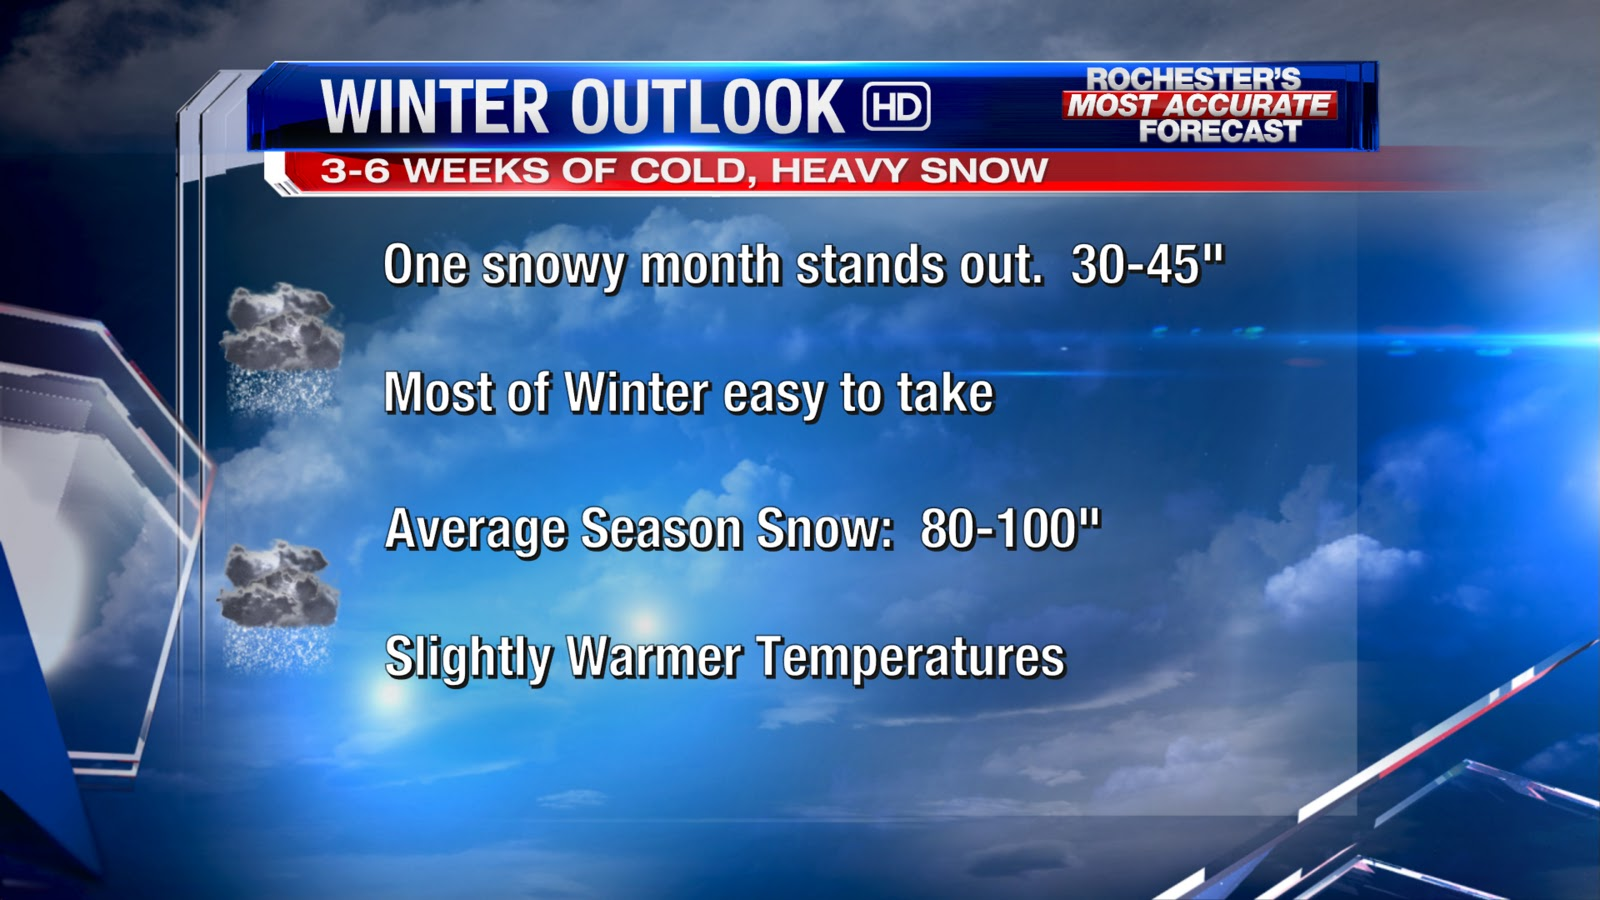 HIGHLIGHTS OF THE UPCOMING WINTER